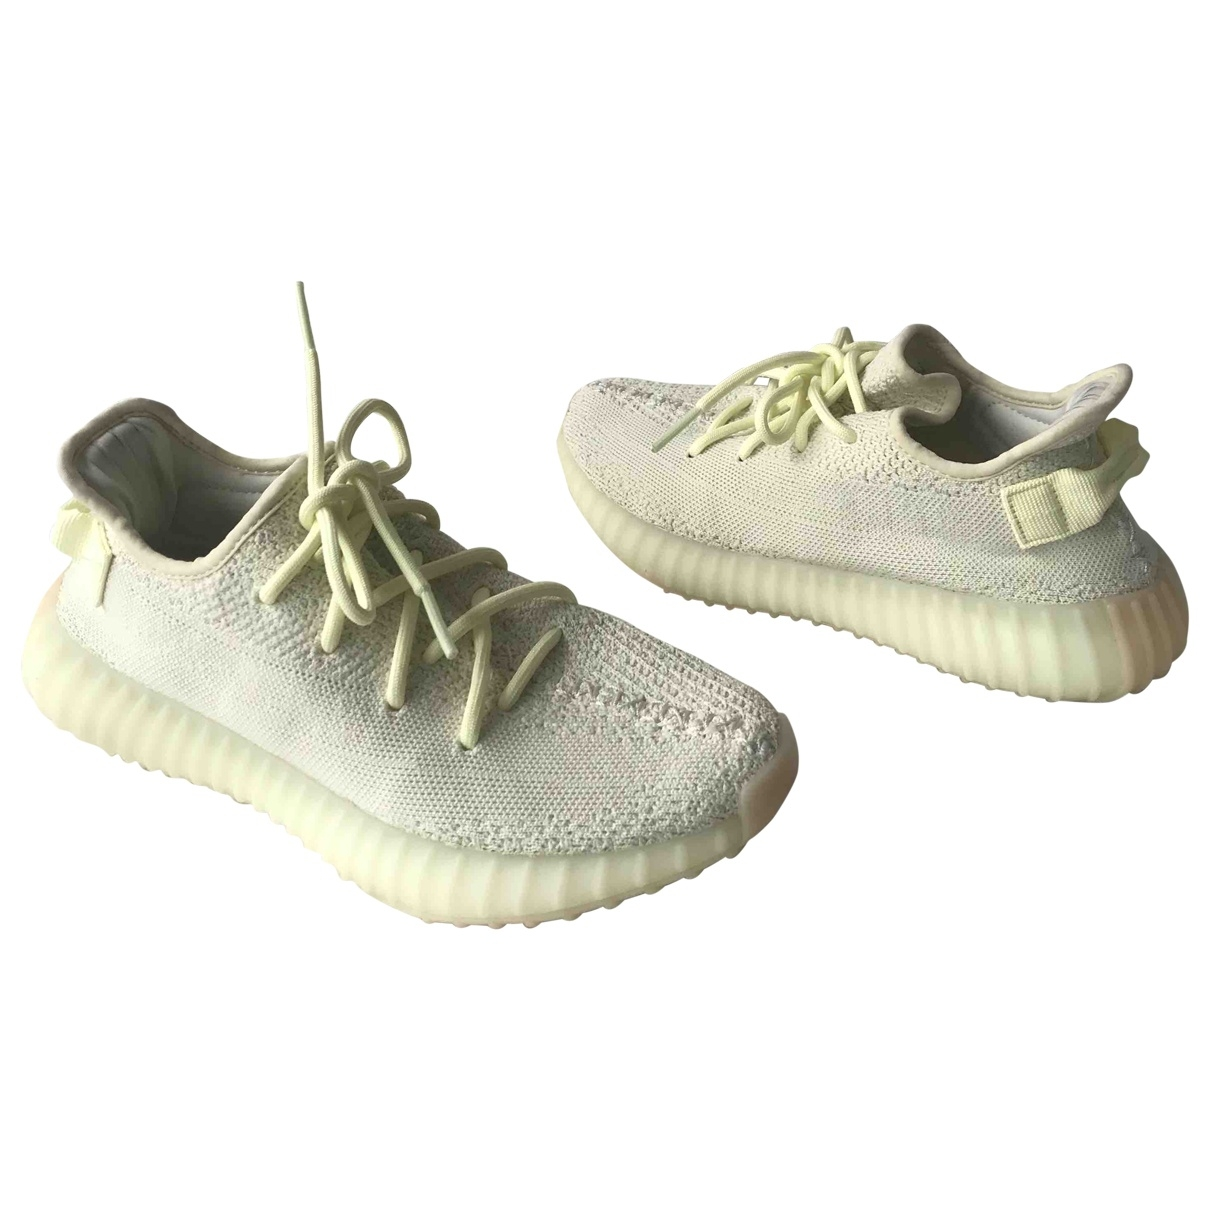 Yeezy X Adidas Boost 350 V2 Yellow Cloth Trainers for Women 40 EU